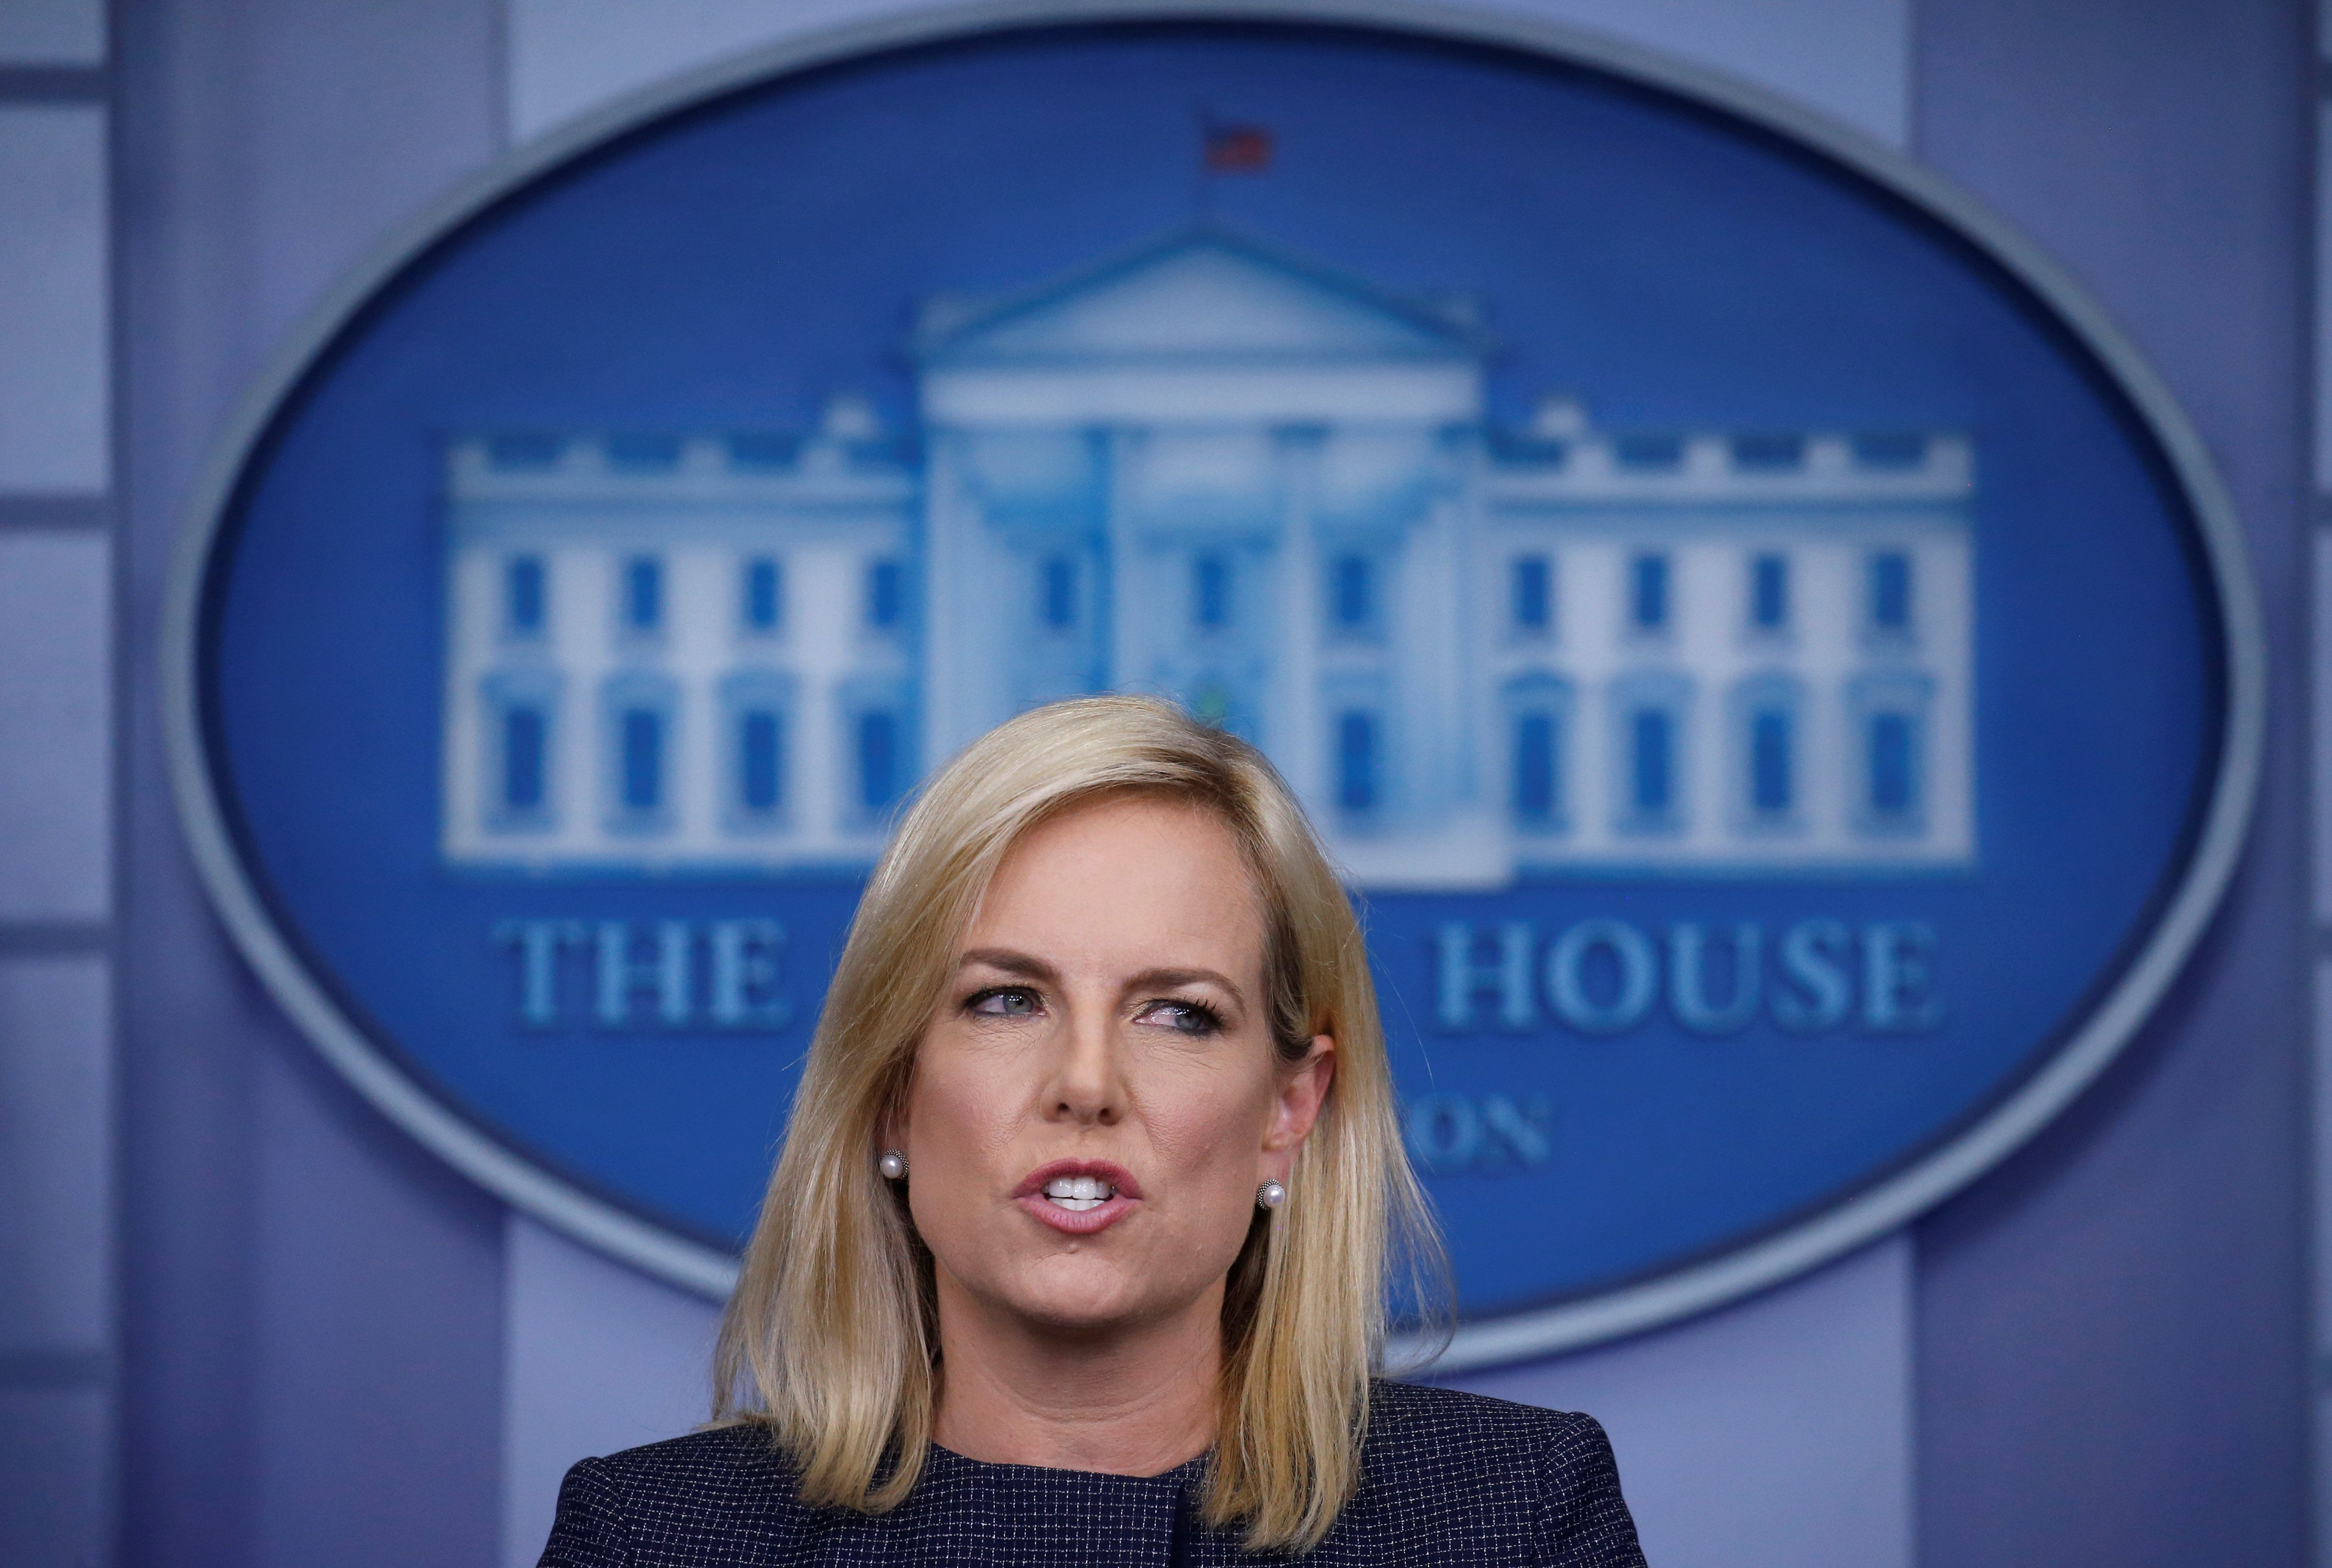 United States Secretary of Homeland Security Kirstjen Nielsen answers questions during the daily briefing at the White House in Washington, D.C., U.S., June 18, 2018. REUTERS/Leah Millis